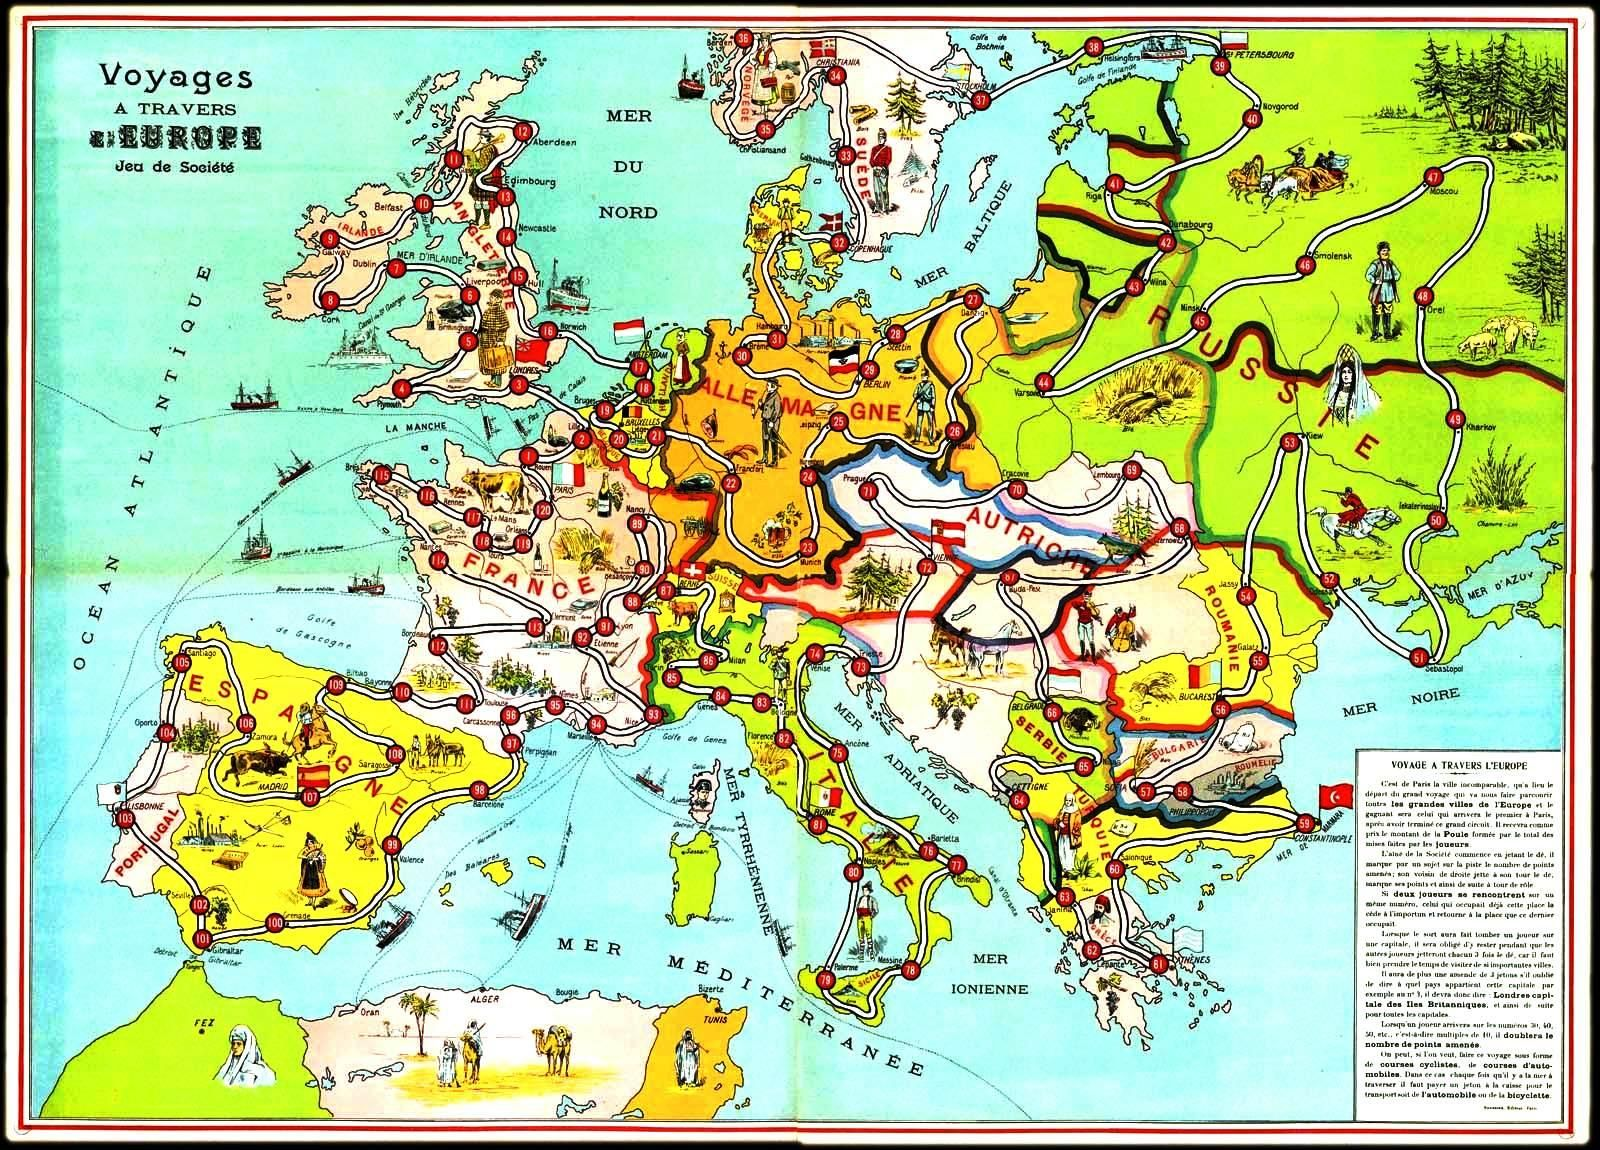 GeopoliticalPoliticalMapEuropeFrenchmapwithculturallabels - French map of europe